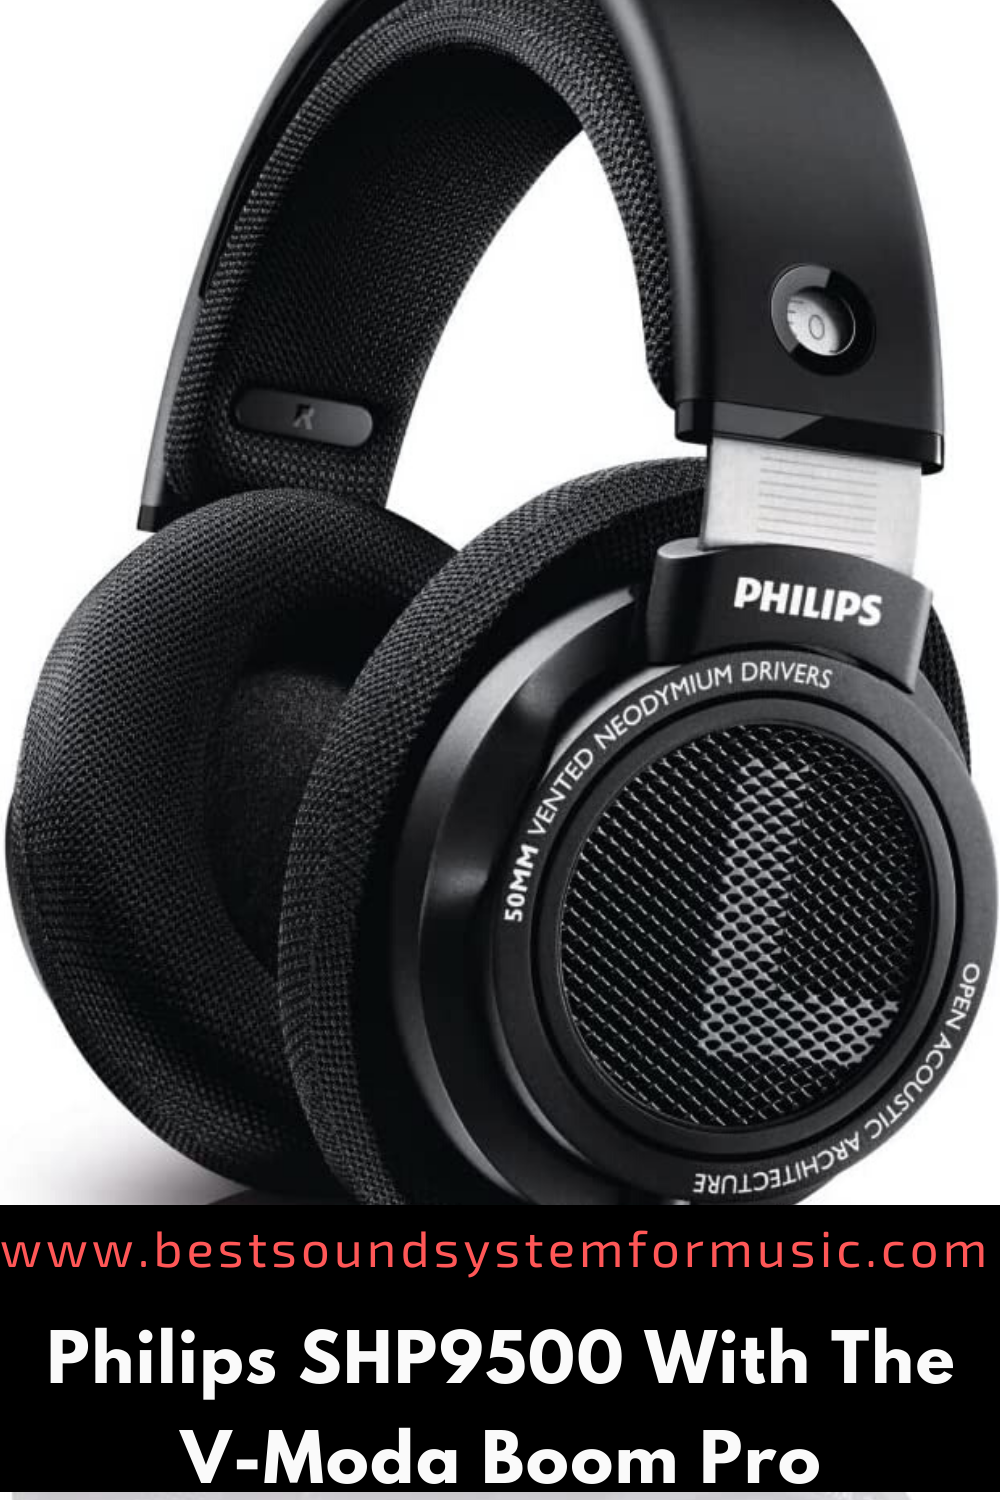 Philips SHP9500 With V-Moda Boom Pro